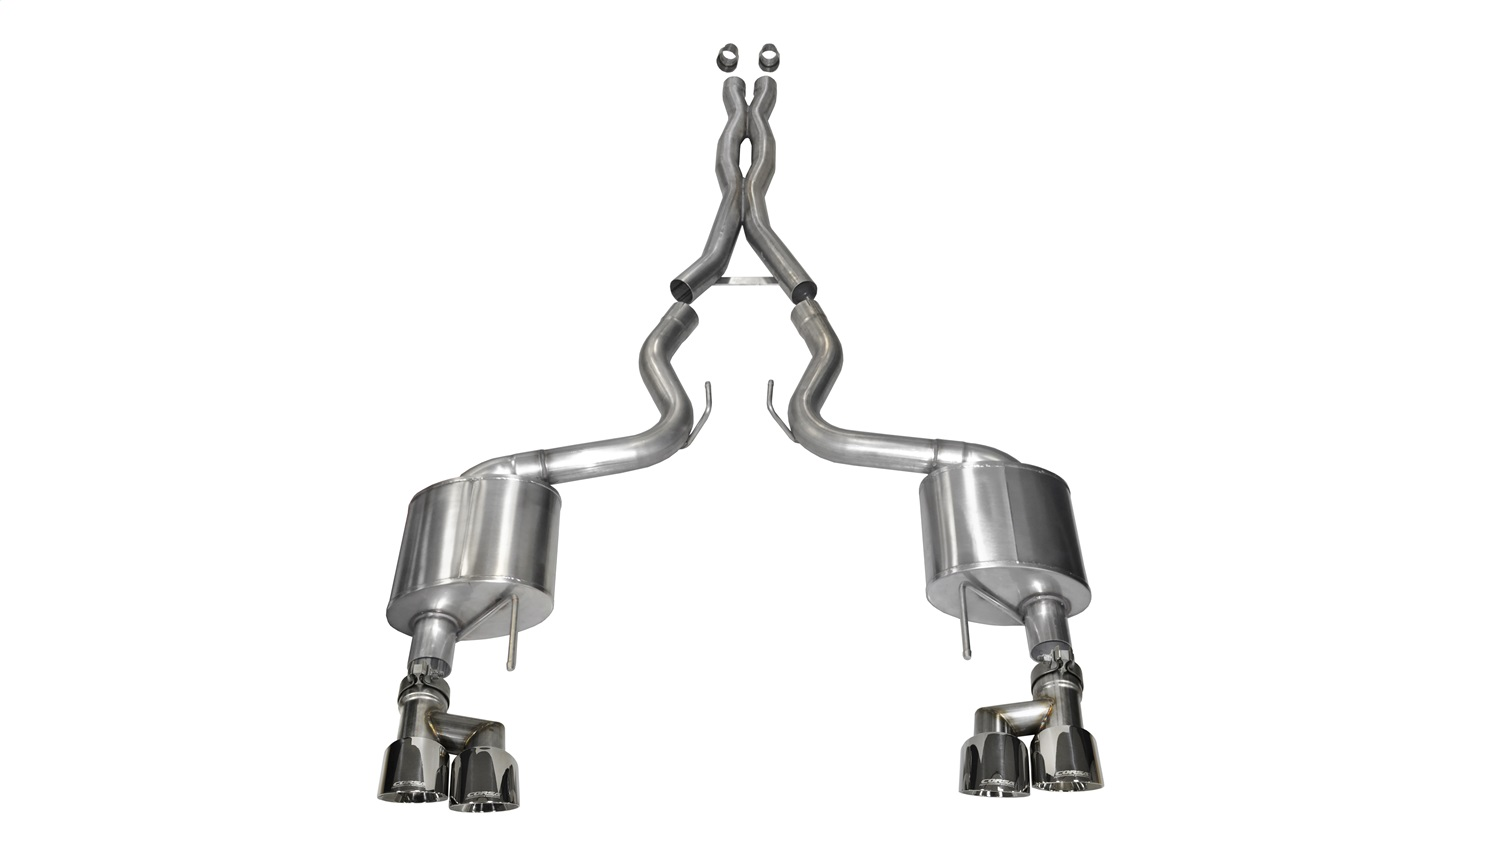 Corsa Performance 14335 Xtreme Cat-Back Exhaust System Fits 15-17 Mustang